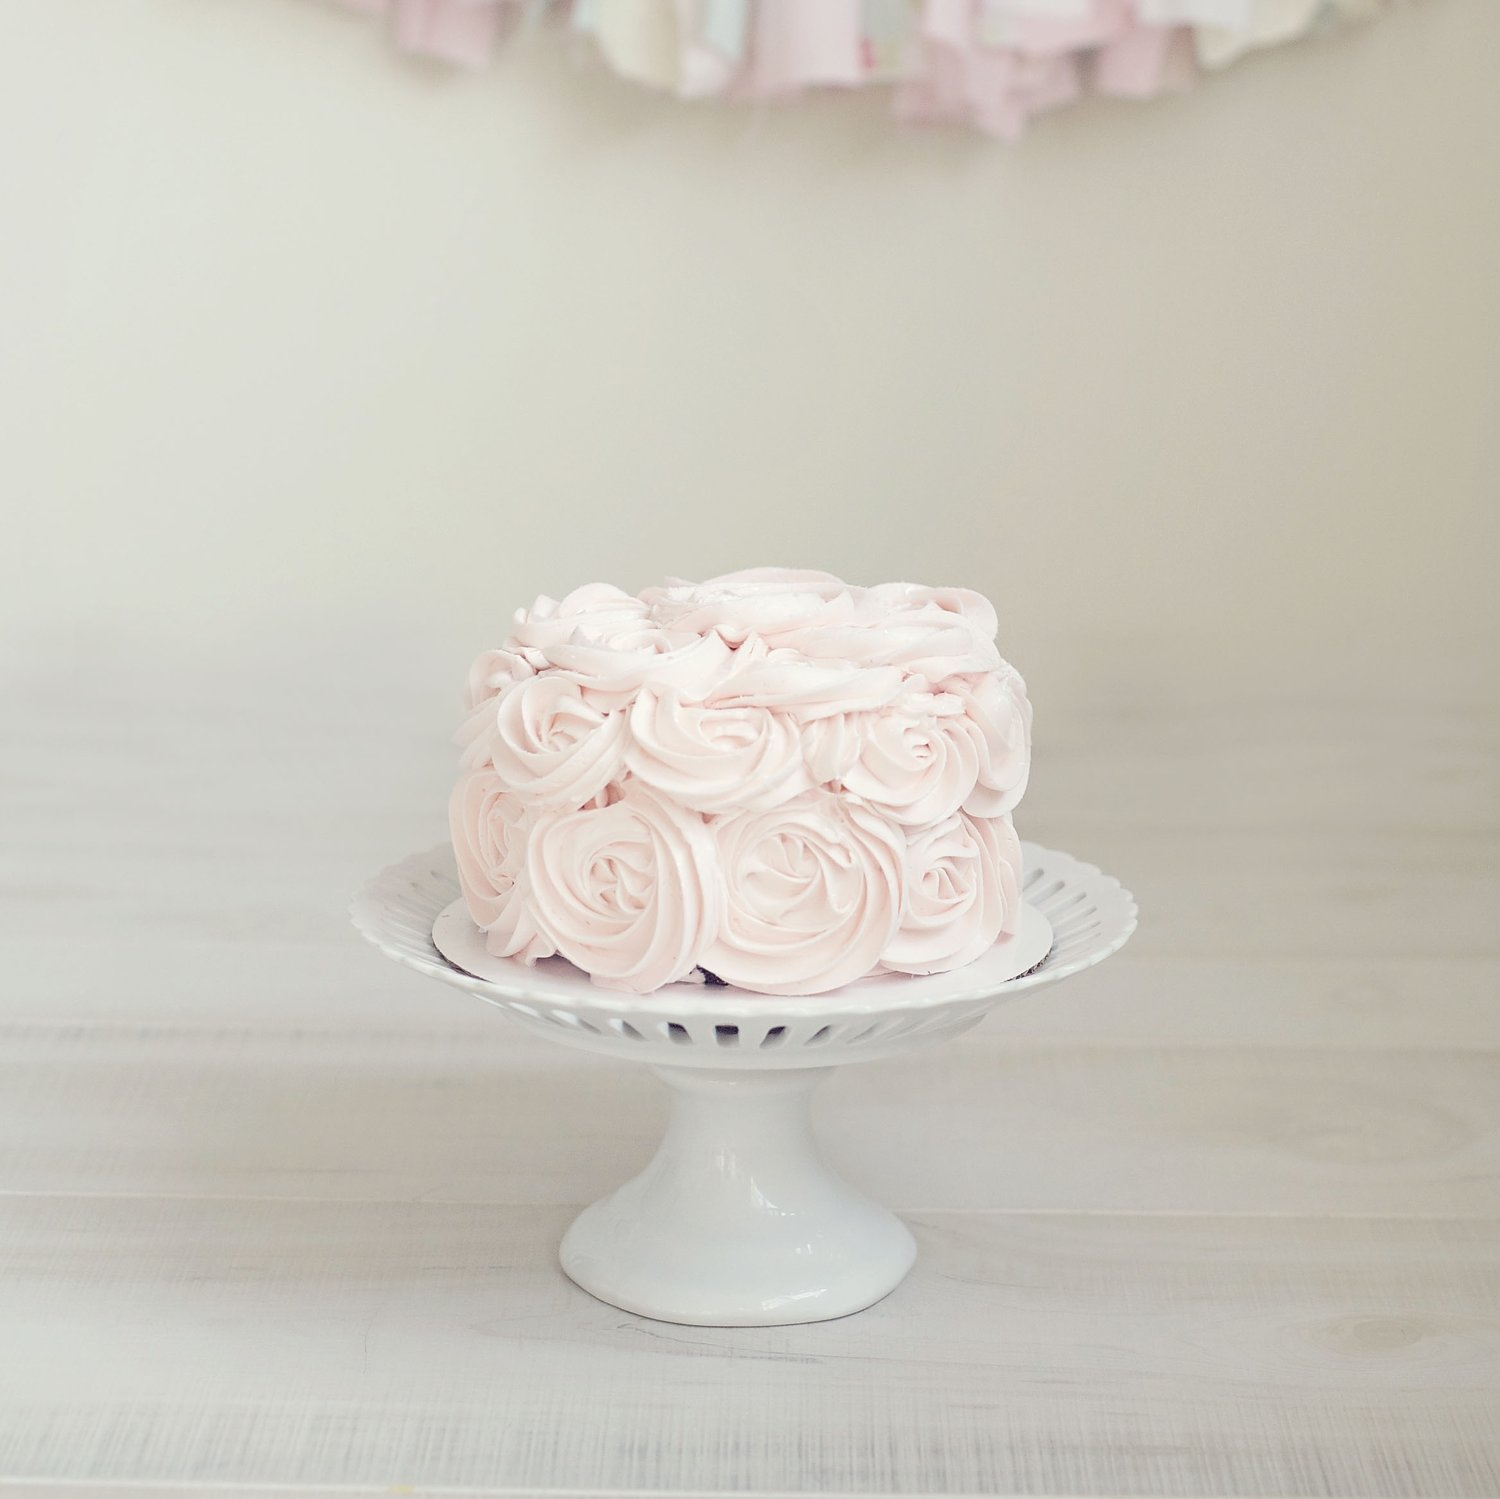 The Bake Shoppe at Country Table - Premium cakes for birthdays ...